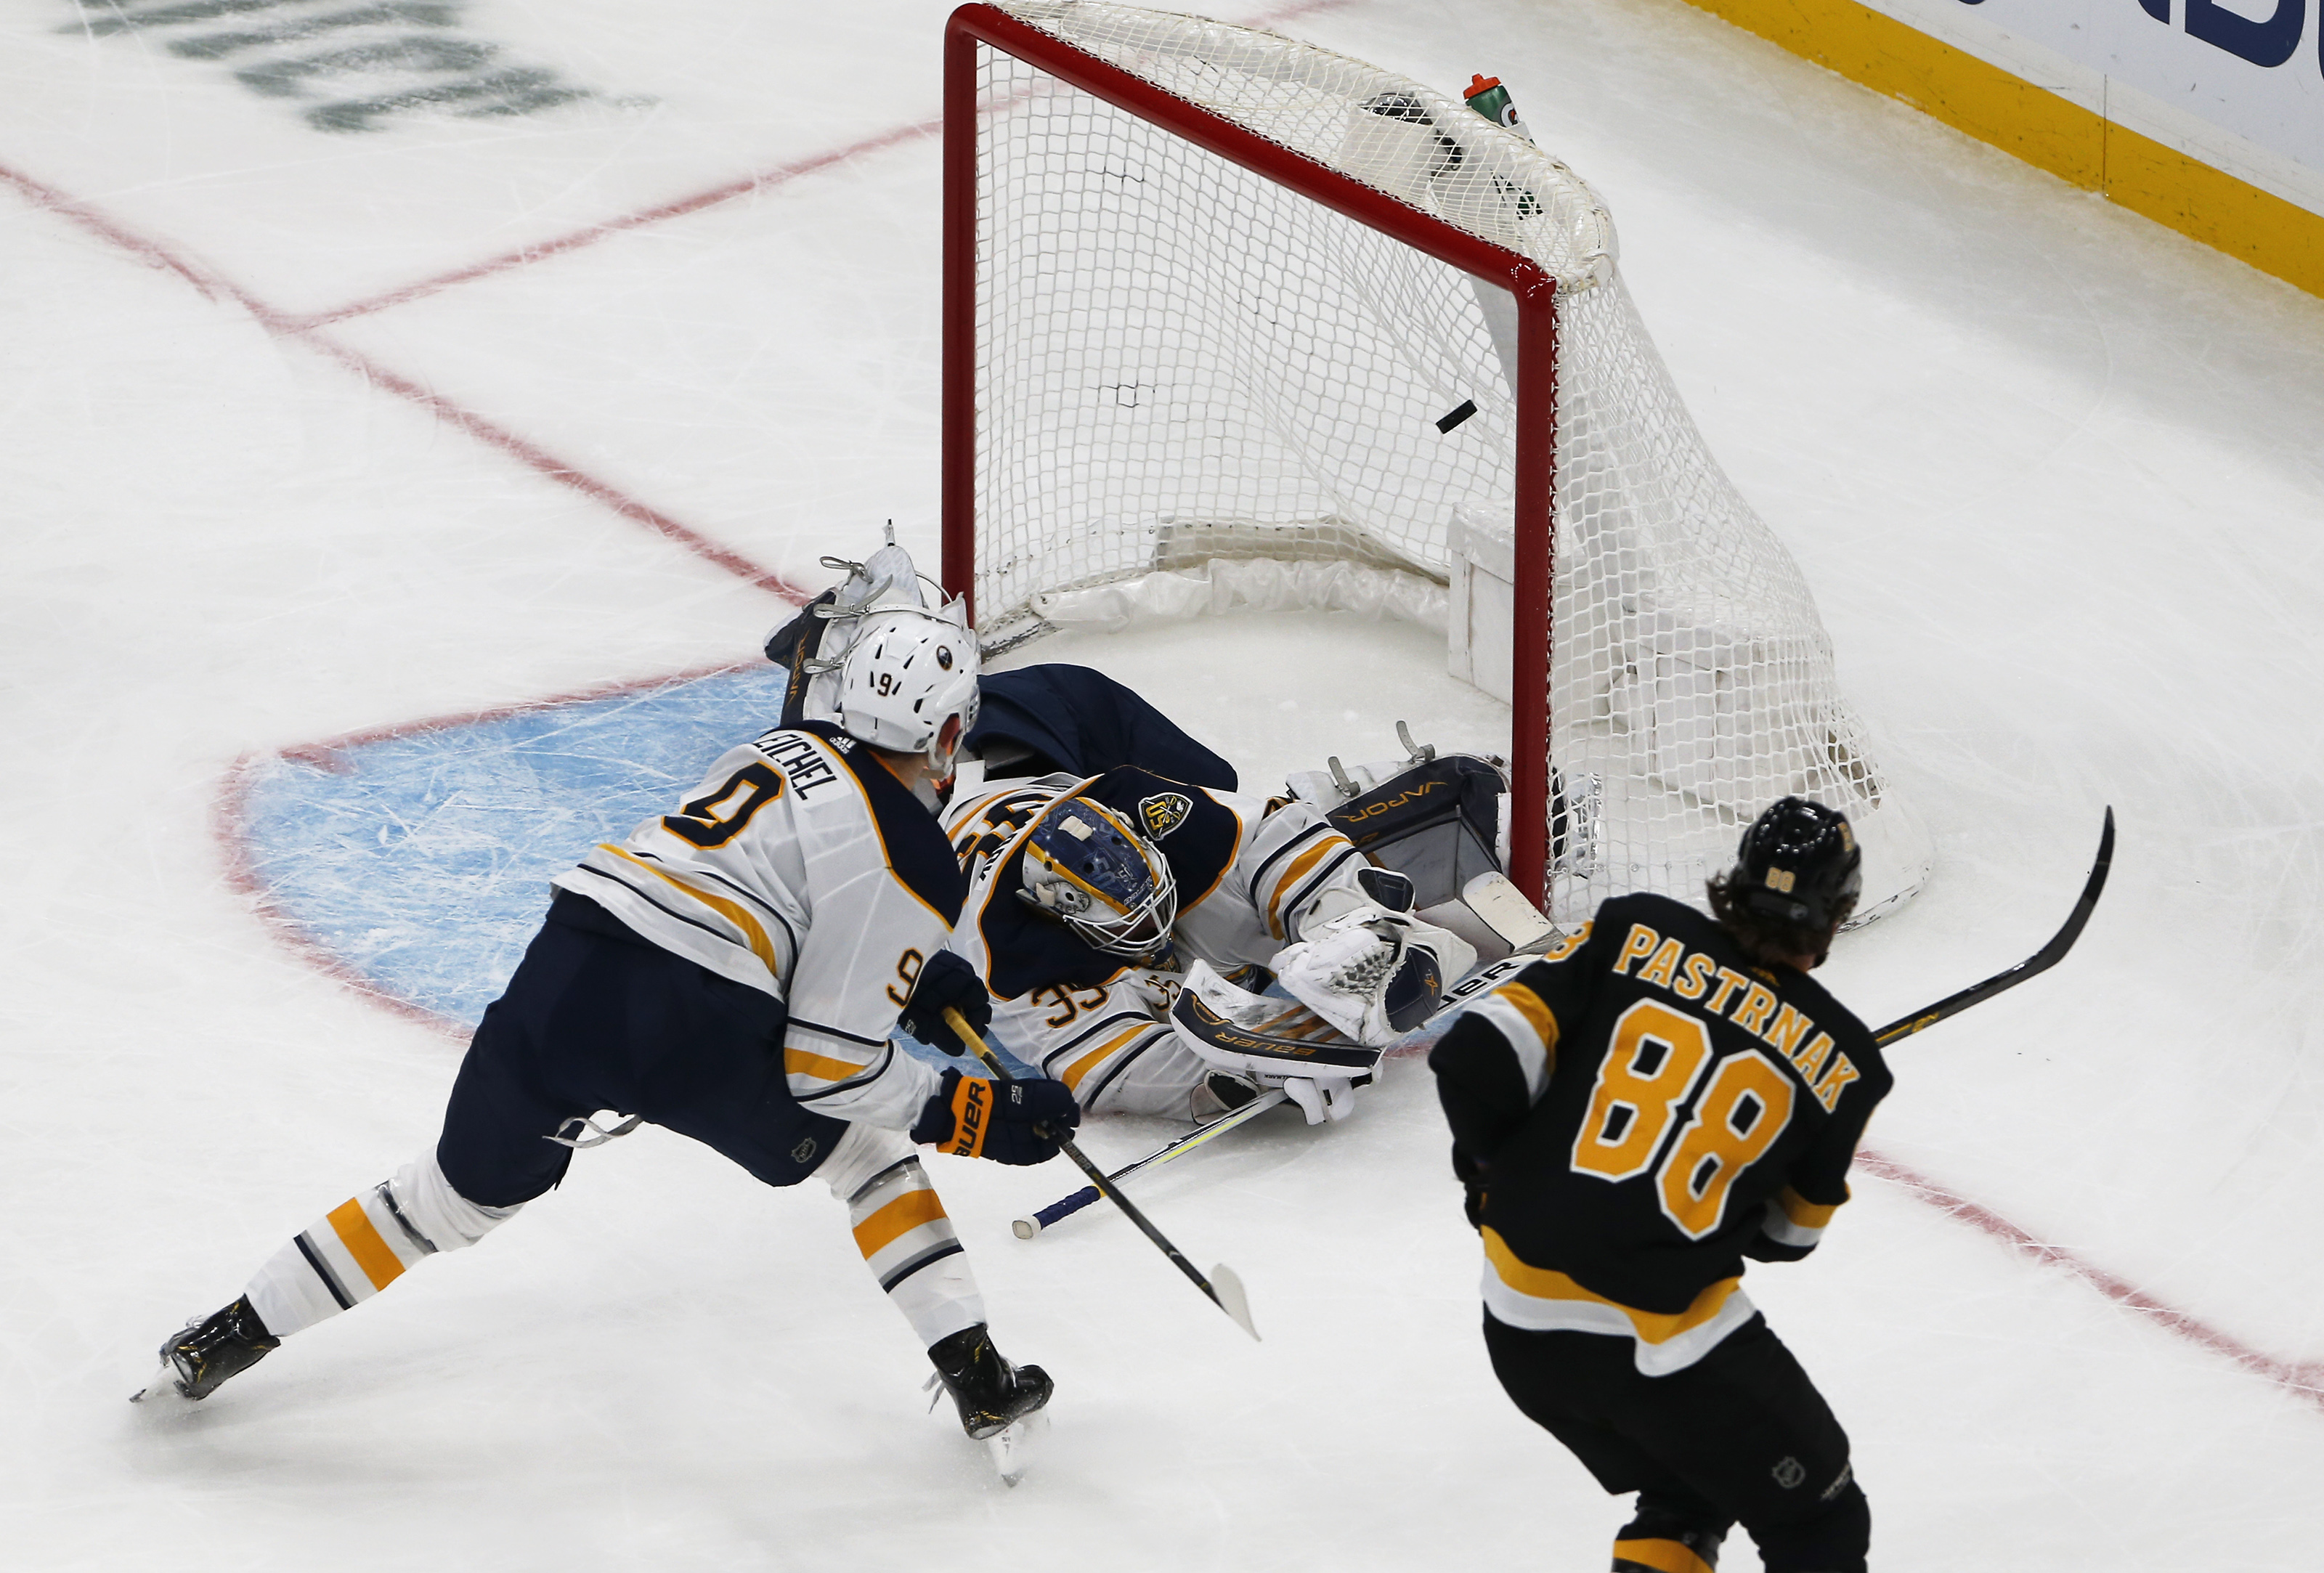 Buffalo Sabres Vs. Boston Bruins at TD Garden